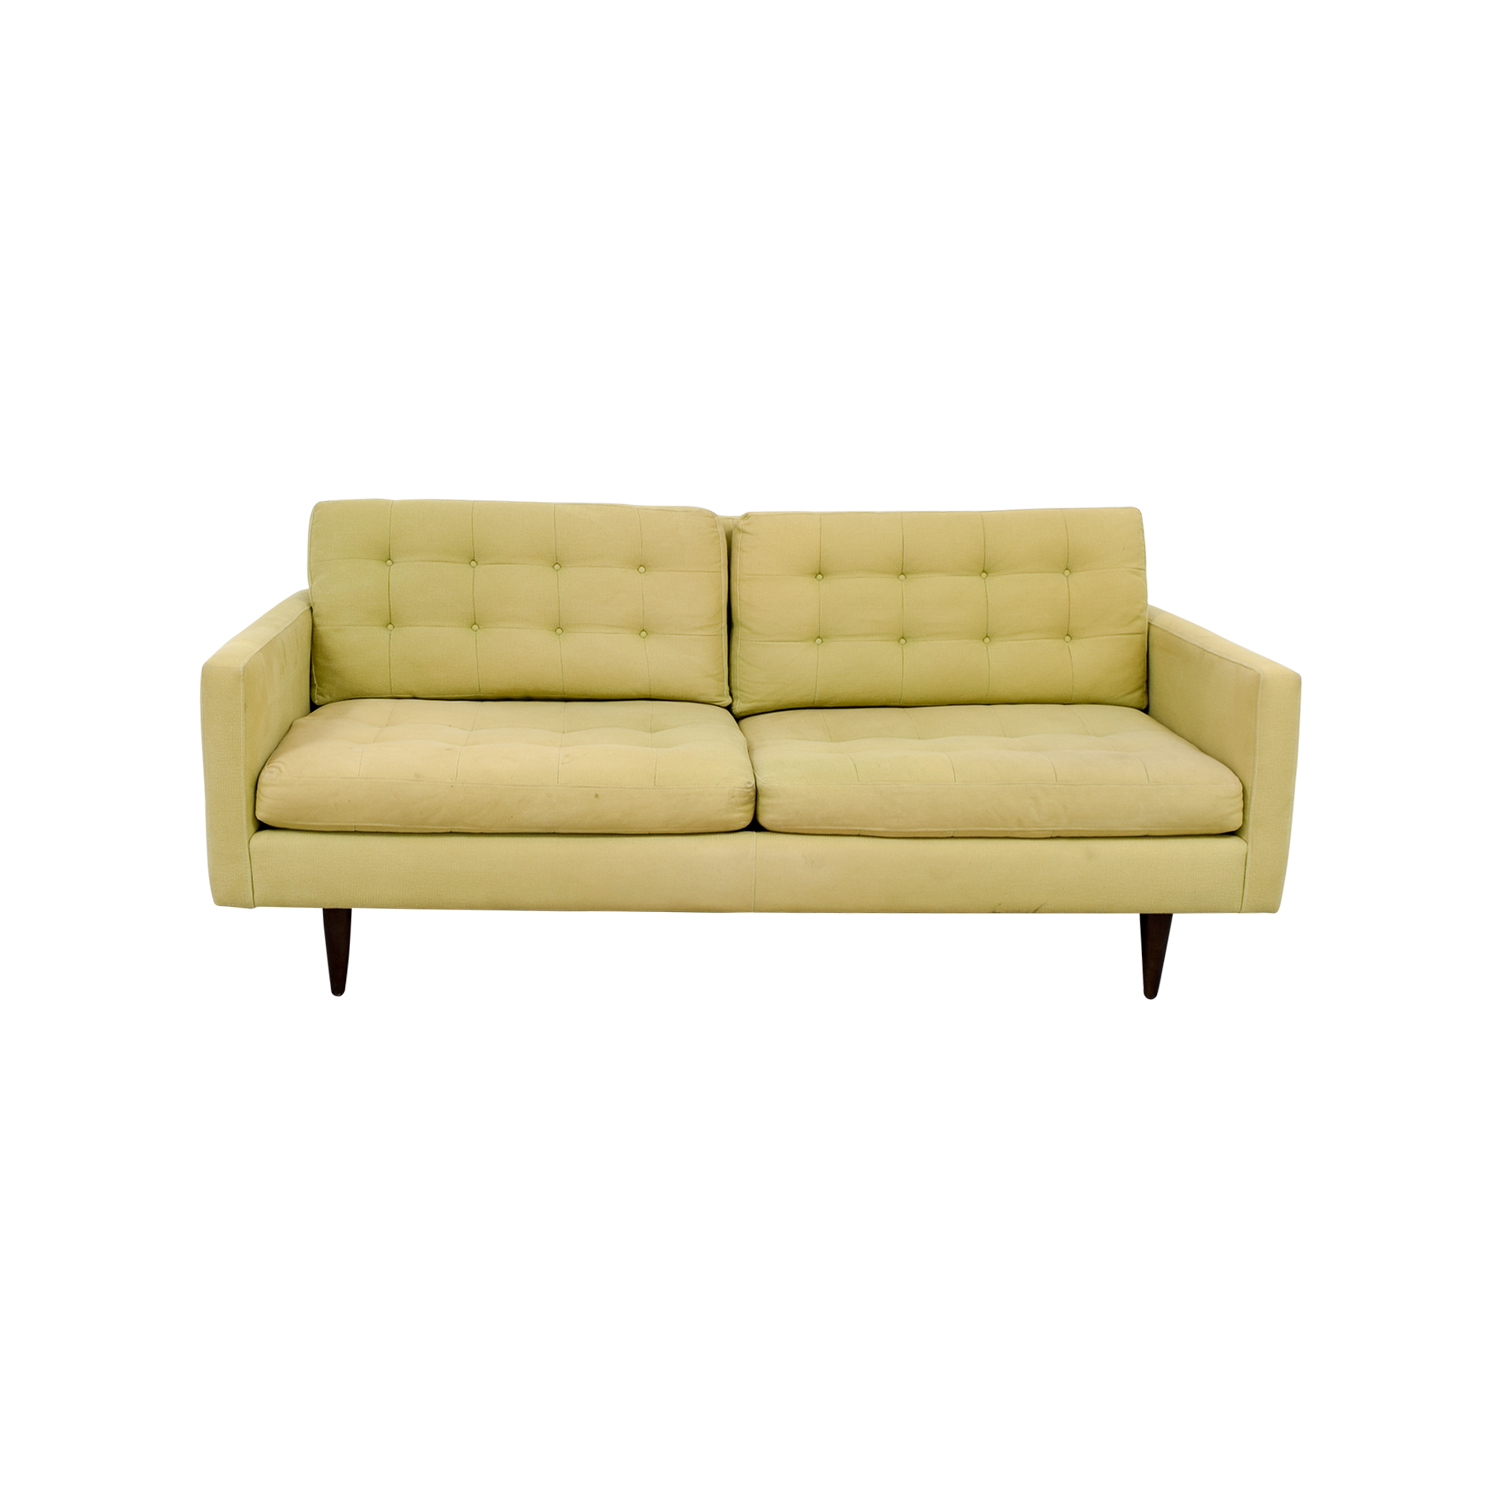 Crate & Barrel Crate & Barrel Petrie Pale Green Tufted Sofa coupon